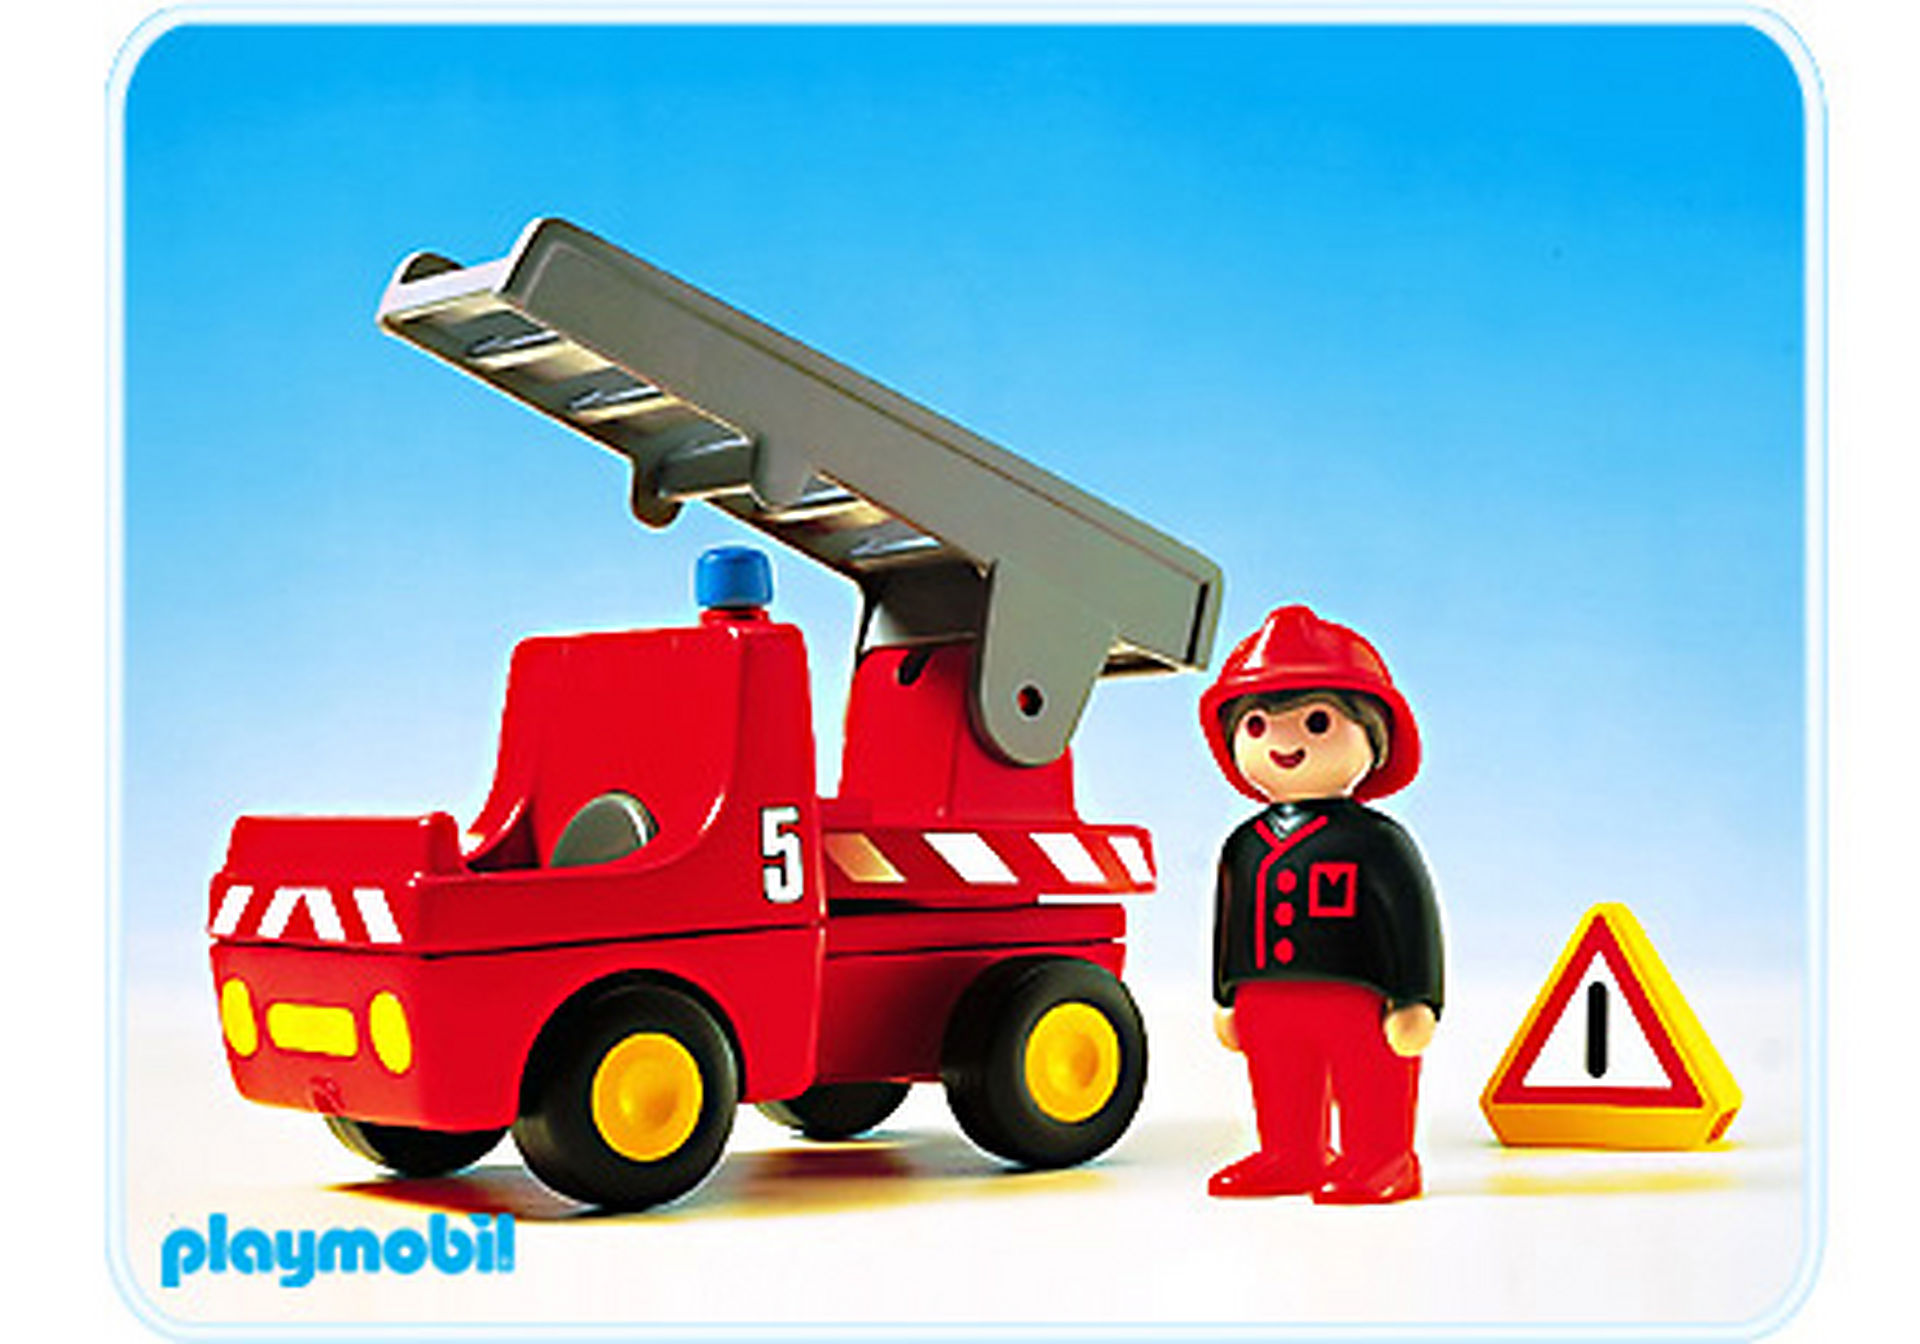 http://media.playmobil.com/i/playmobil/6704-A_product_detail/Feuerwehrauto